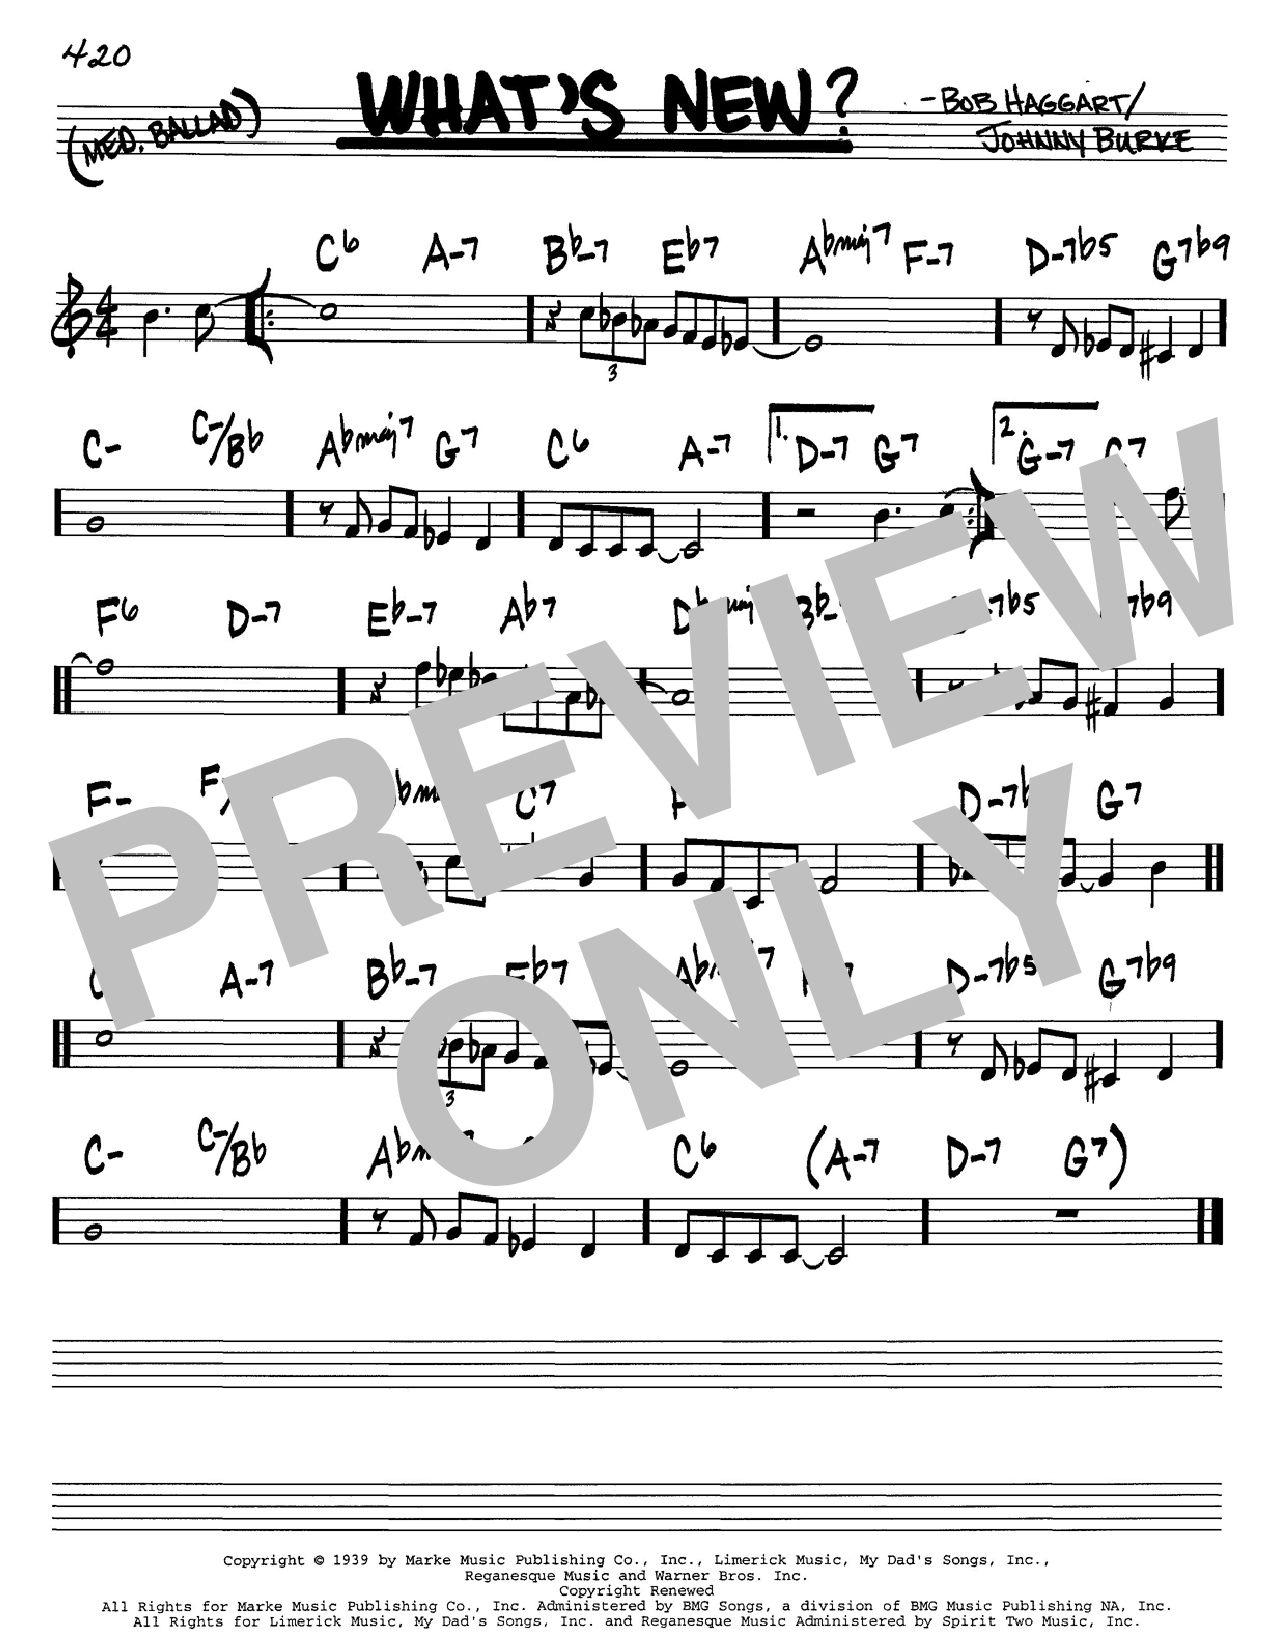 Johnny Burke What's New? sheet music notes and chords